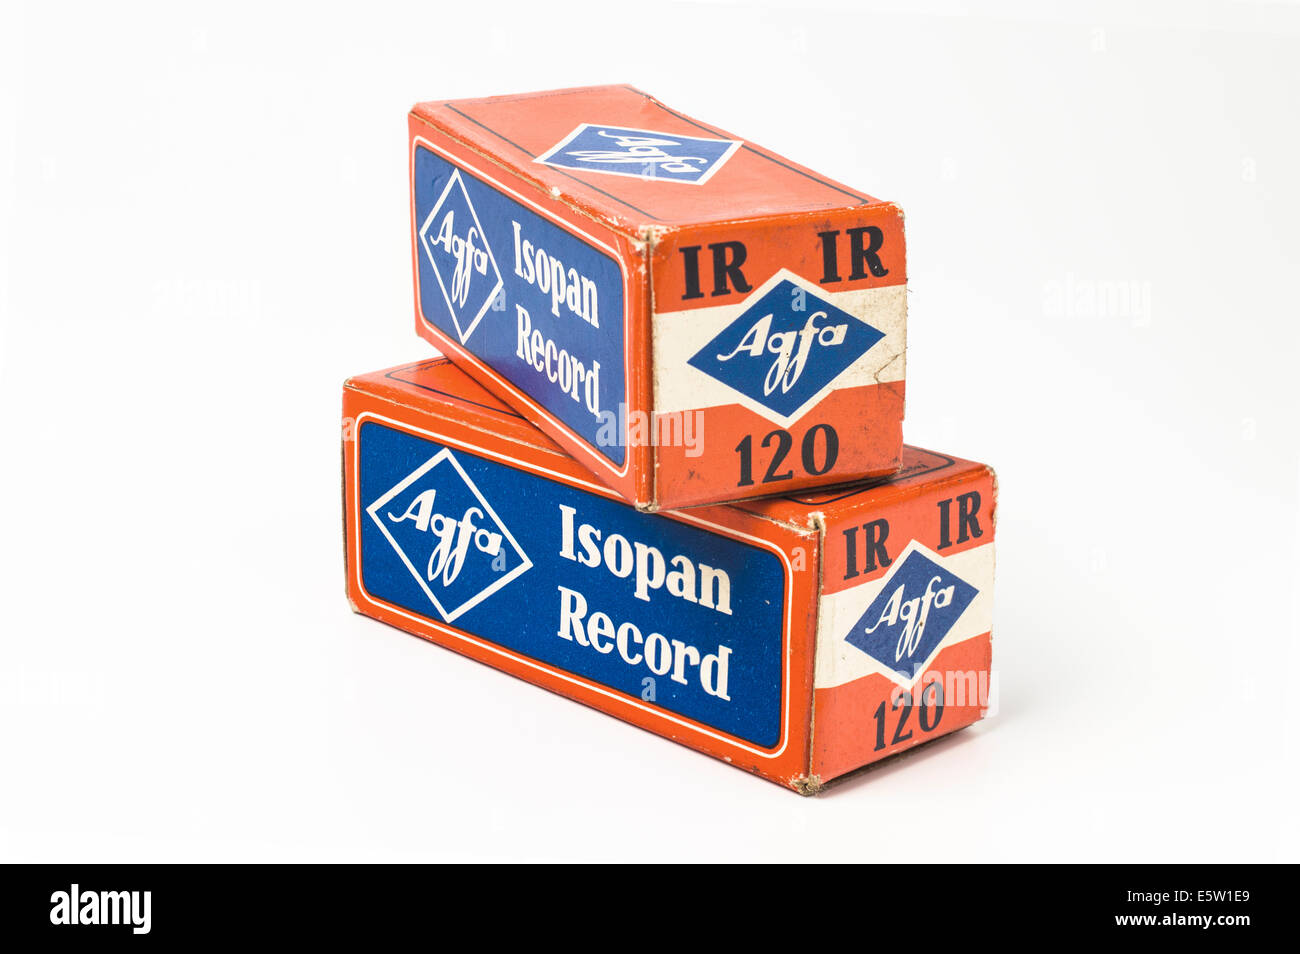 Rolls of Agfa Isopan Record 120 film dated 1970 - high speed 1000-1200 ASA - Stock Image